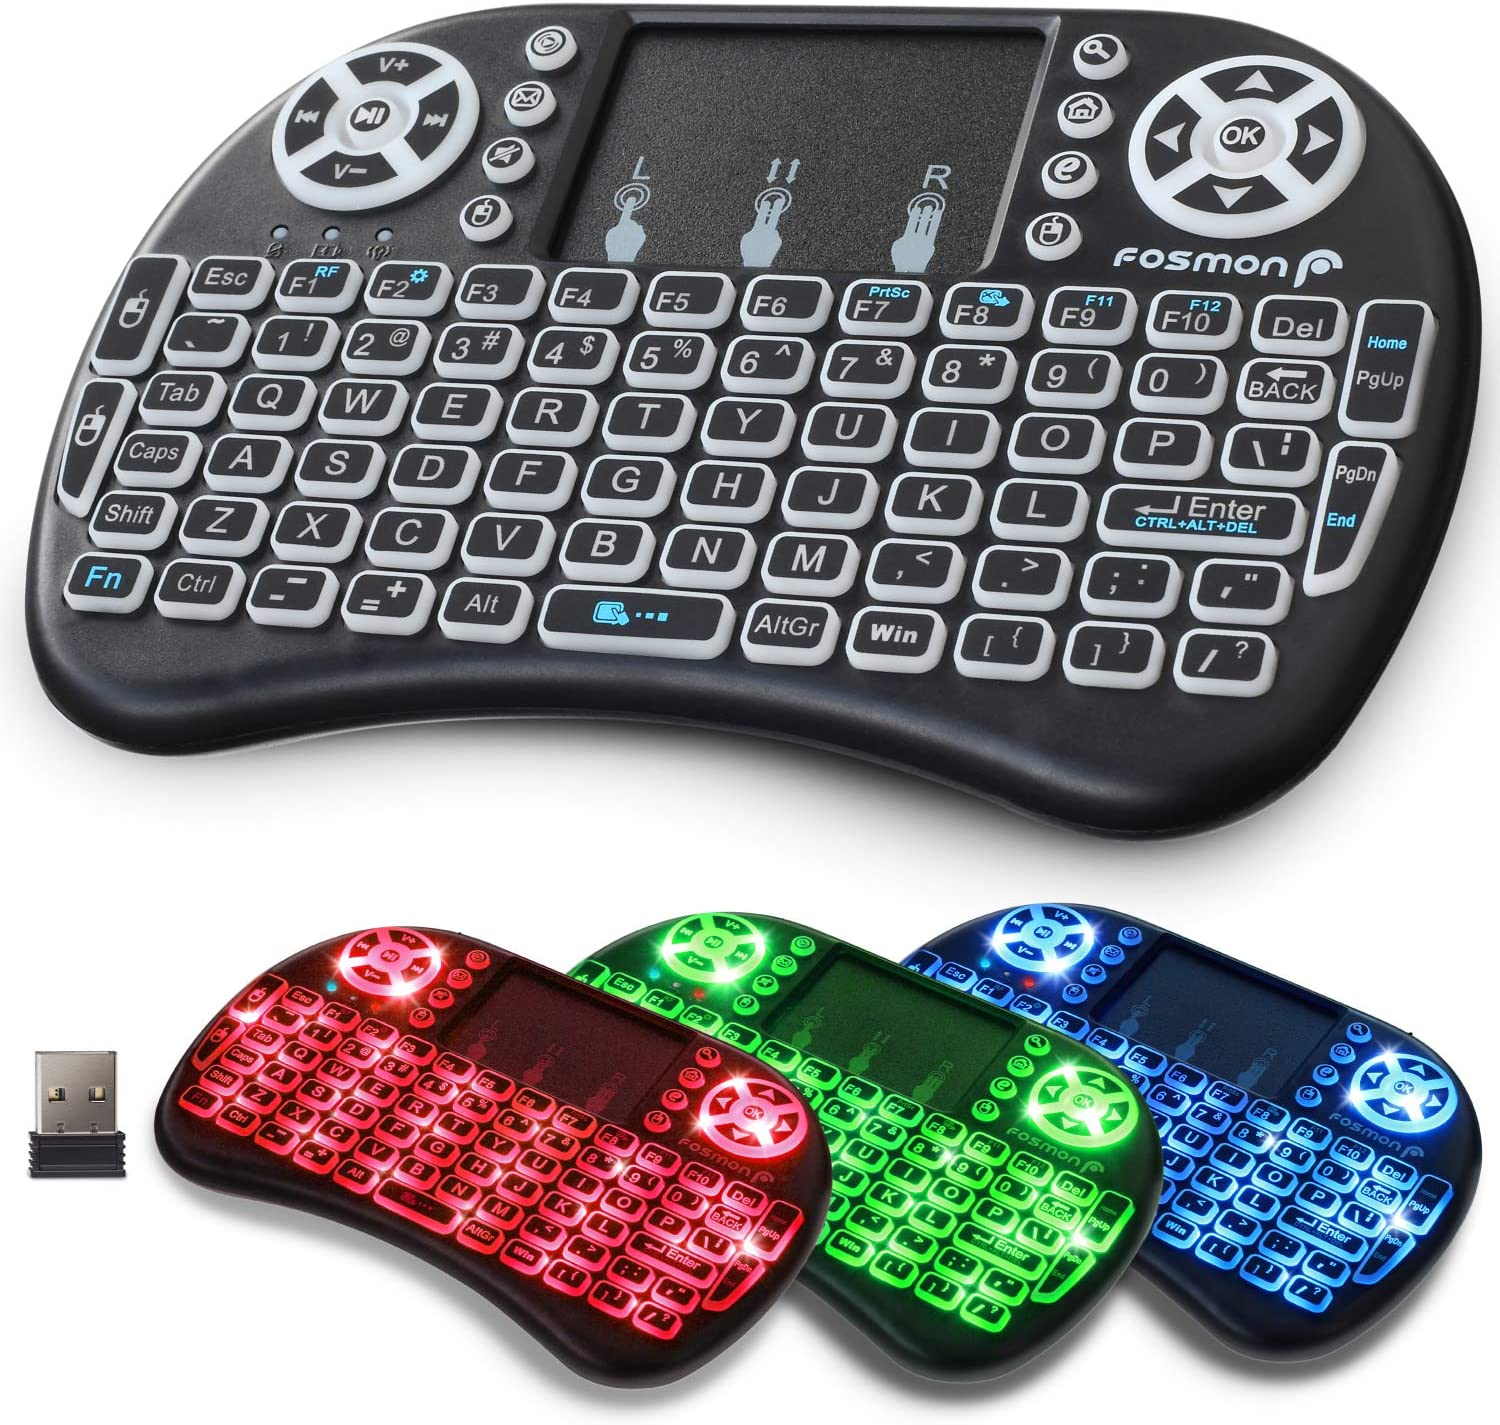 Fosmon Wireless Keyboard with Touchpad and RGB Backlight, Mini Portable 2.4GHz USB Adapter Keyboard, Rechargeable Battery, Adjustable DPI, Compatible with PC/Mac, Smart TVs, PS3/PS4, Xbox360, and more